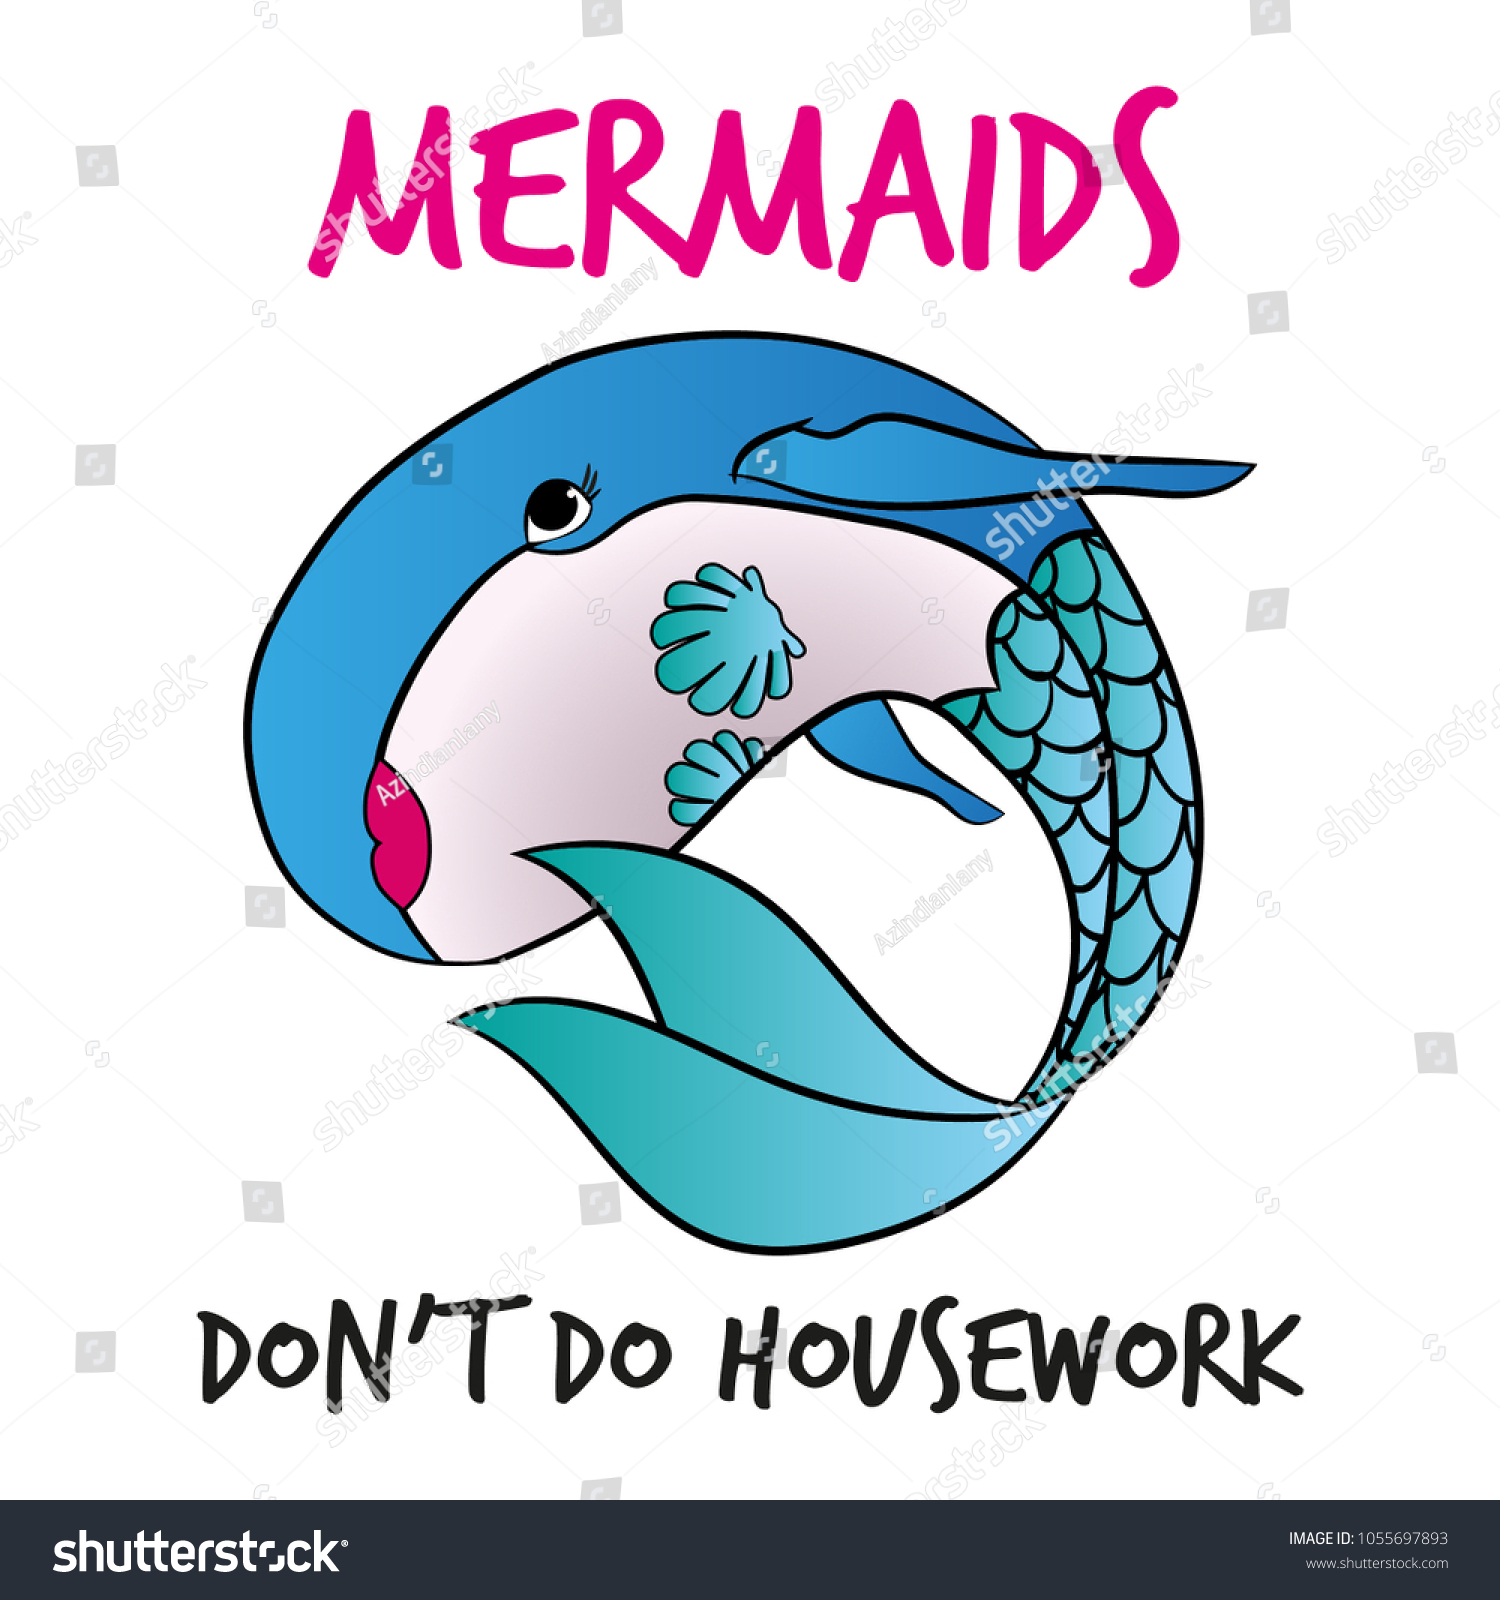 Mermaids Dont Do Housework Funny Vector Stock Vector Royalty Free